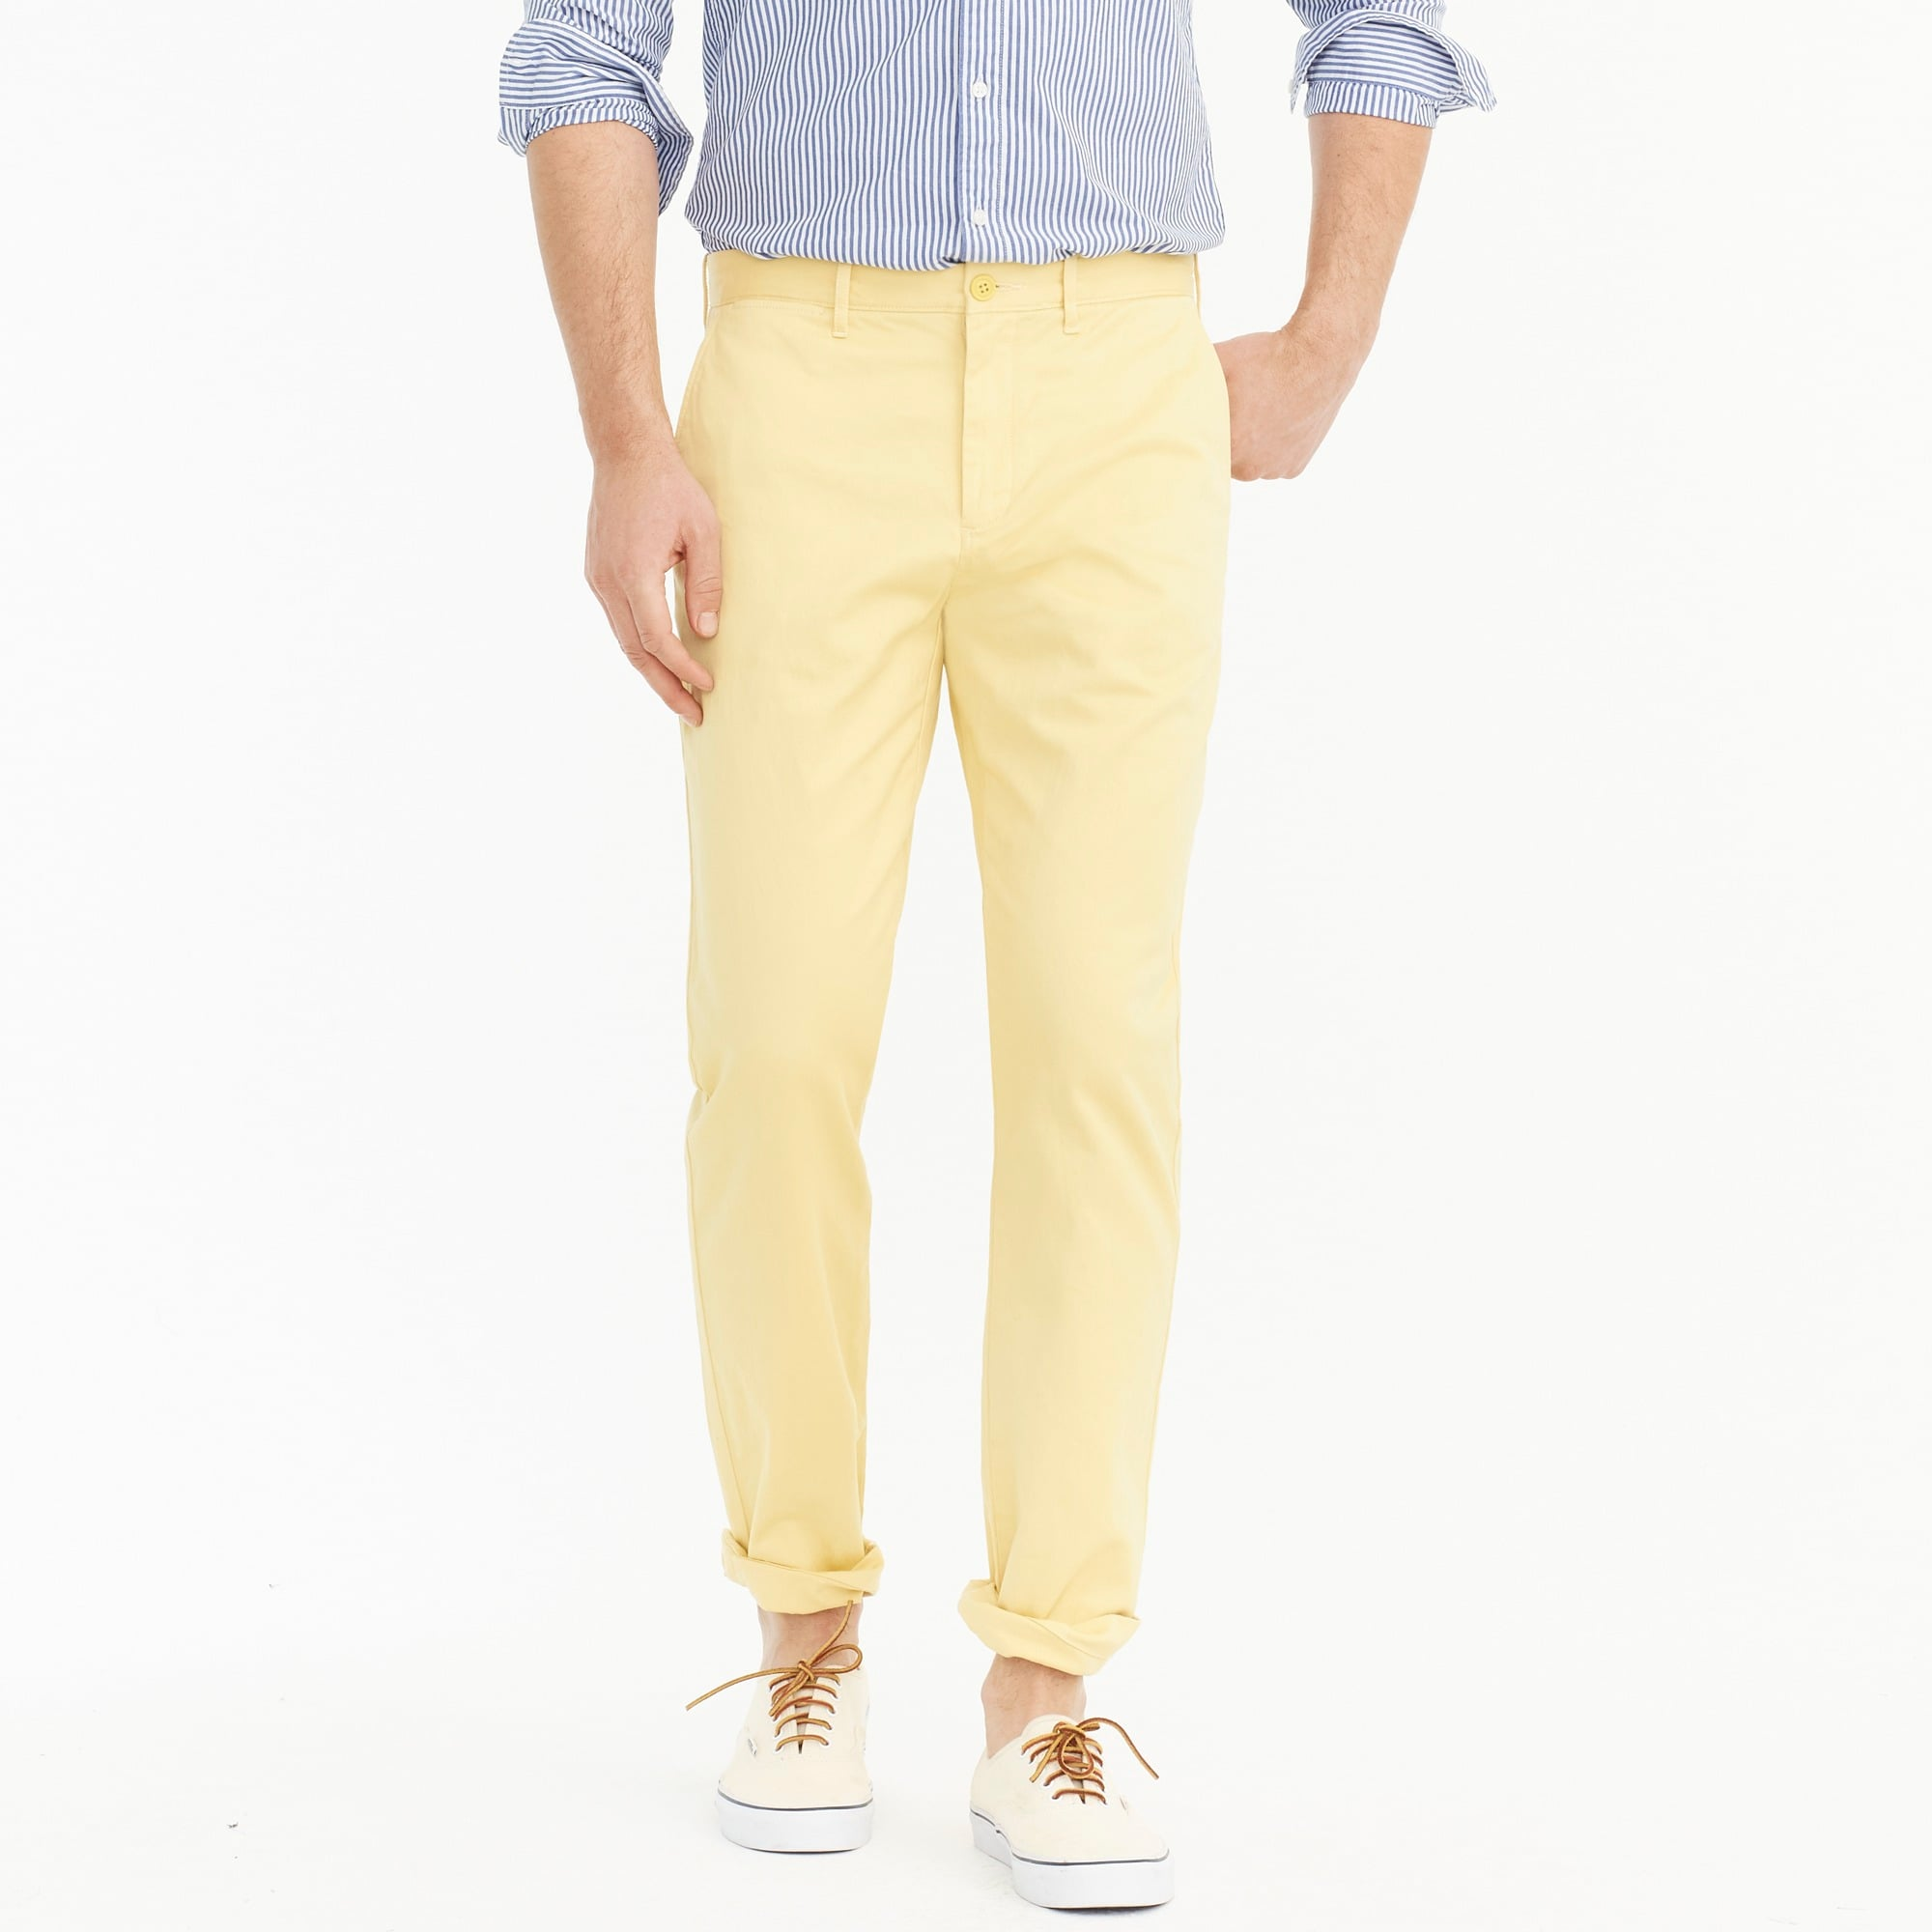 770 Straight-fit pant in stretch chino men pants c